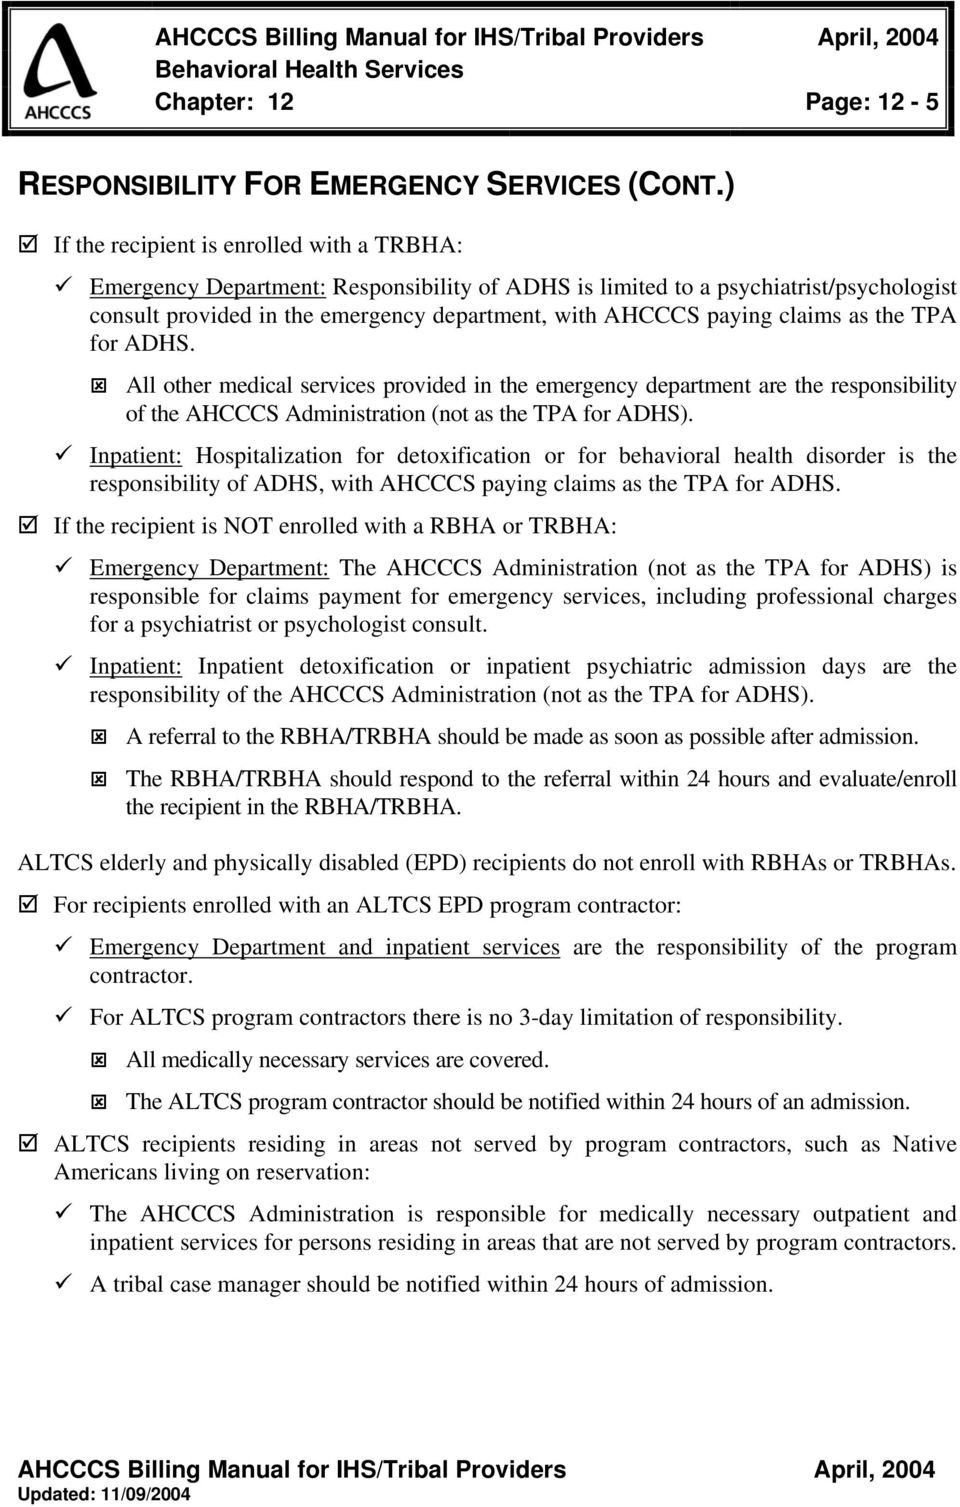 claims as the TPA for ADHS. All other medical services provided in the emergency department are the responsibility of the AHCCCS Administration (not as the TPA for ADHS).